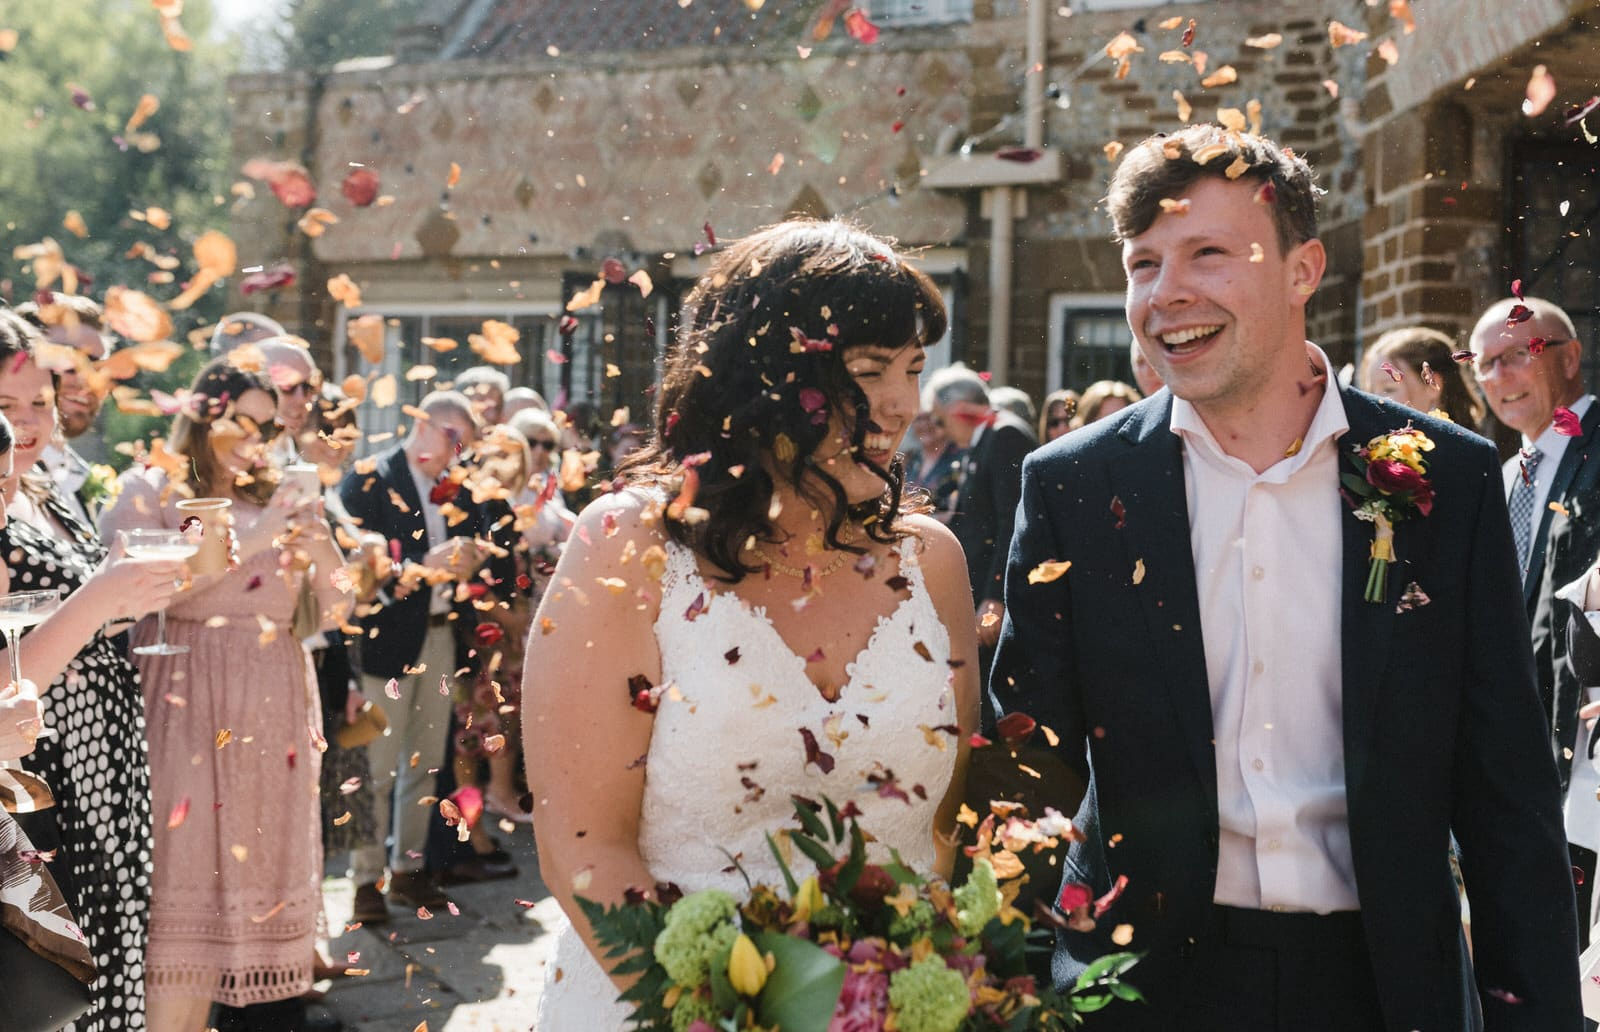 bride and groom in confetti shower voewood wedding